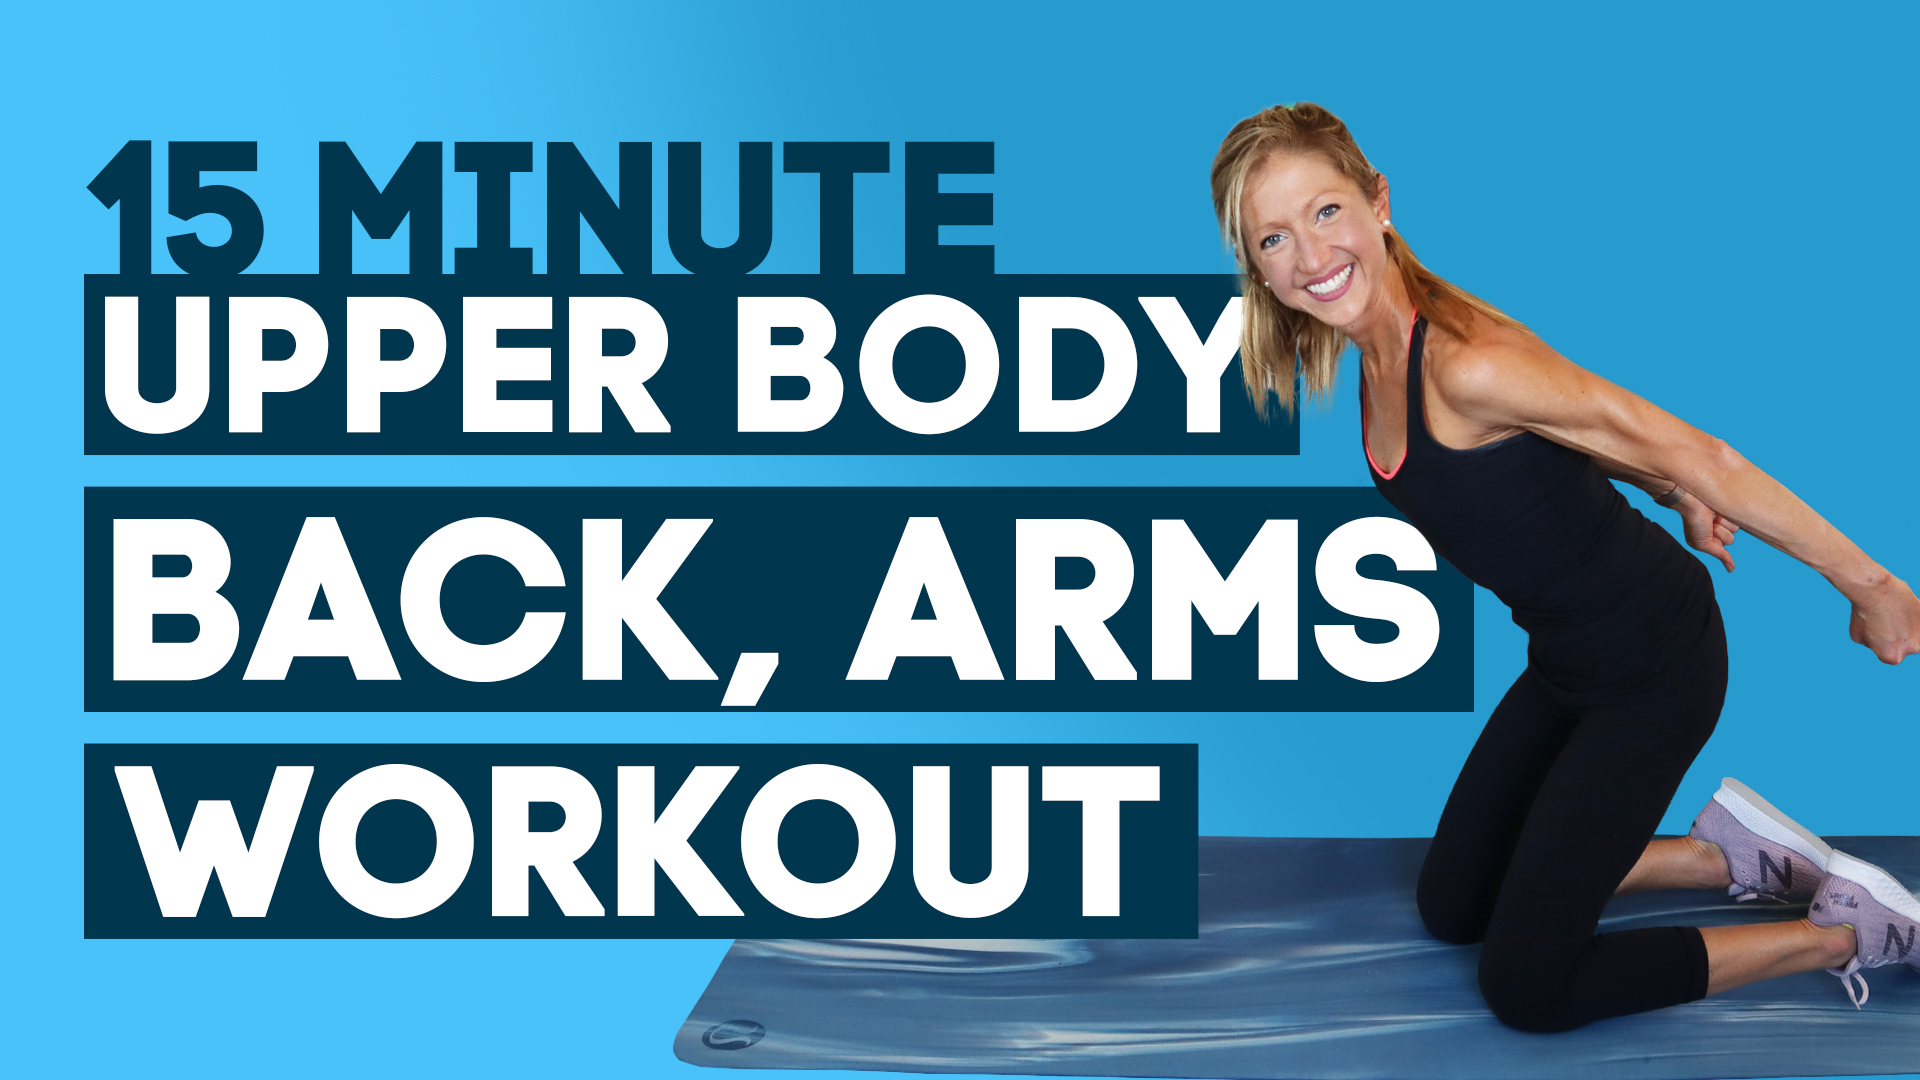 15 minute upper body workout